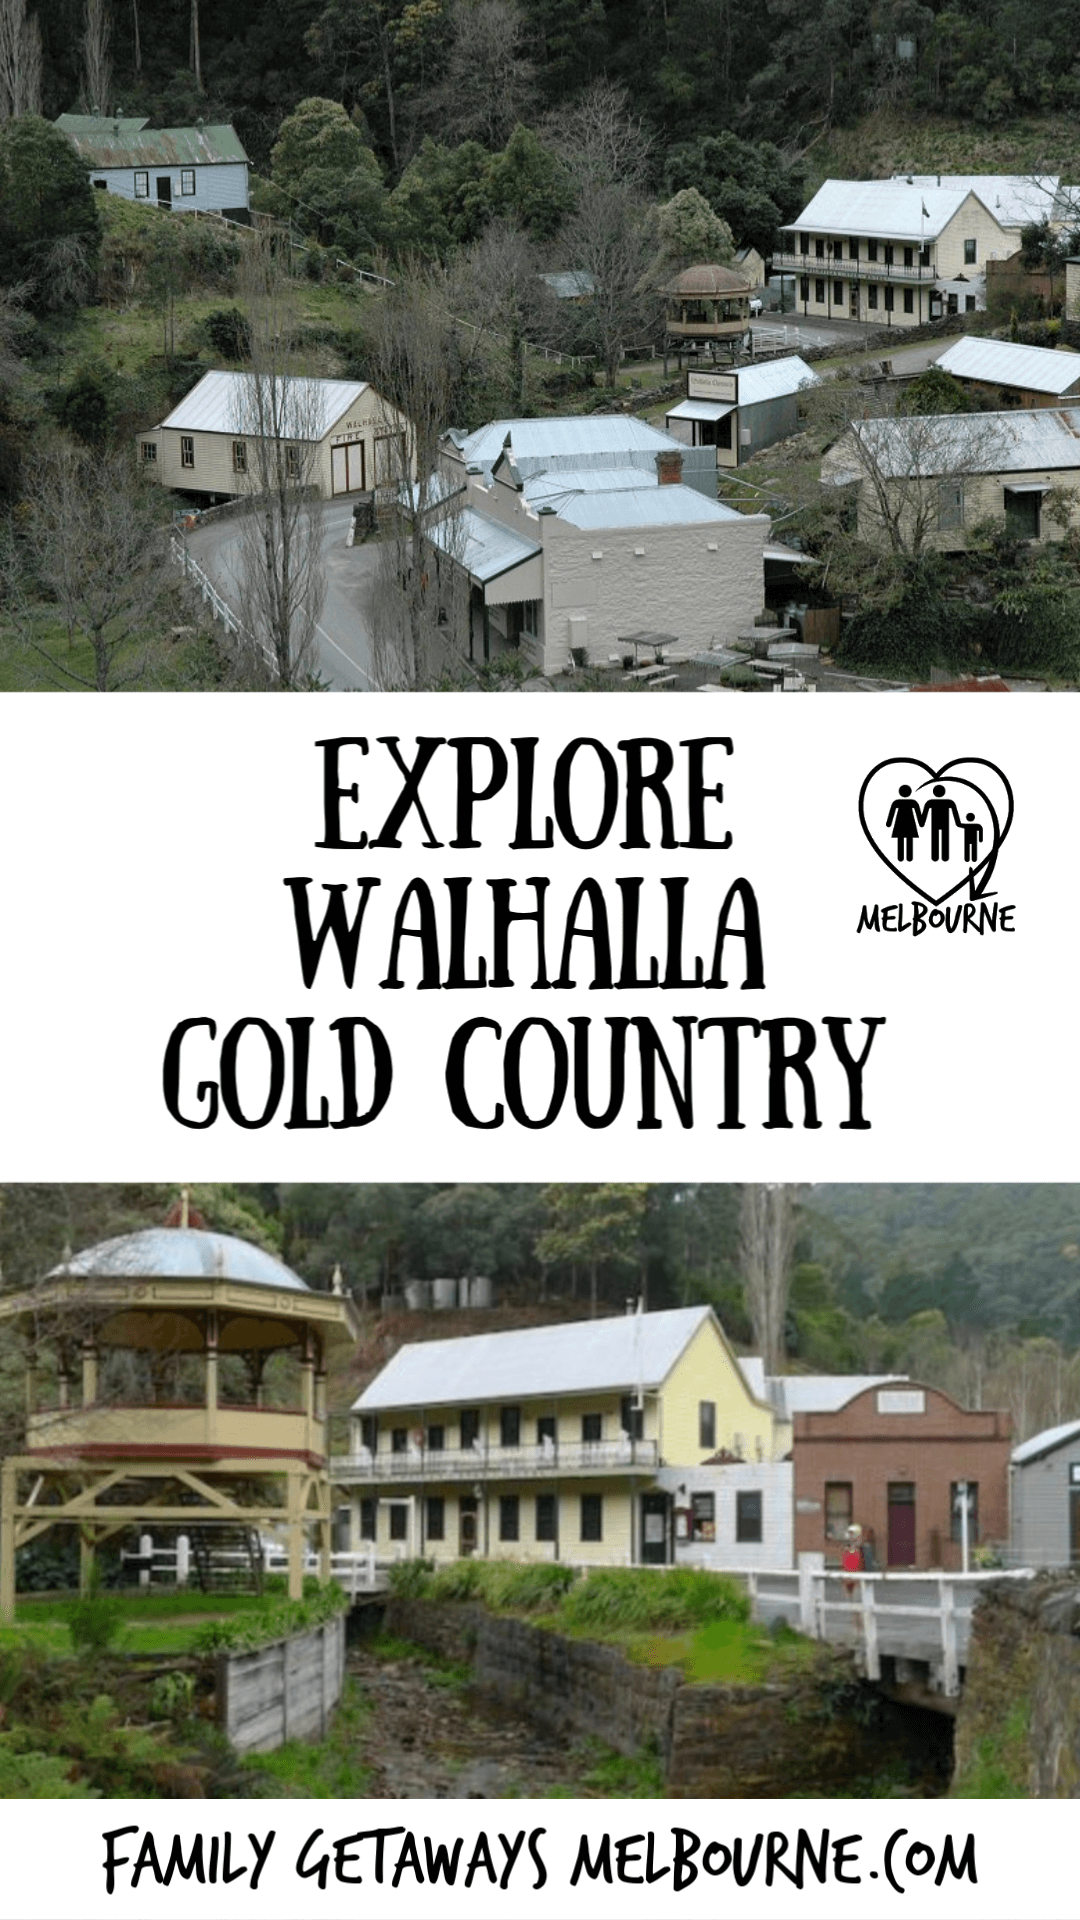 image to pin to Pinterest for the site page on Walhalla haunted weekend